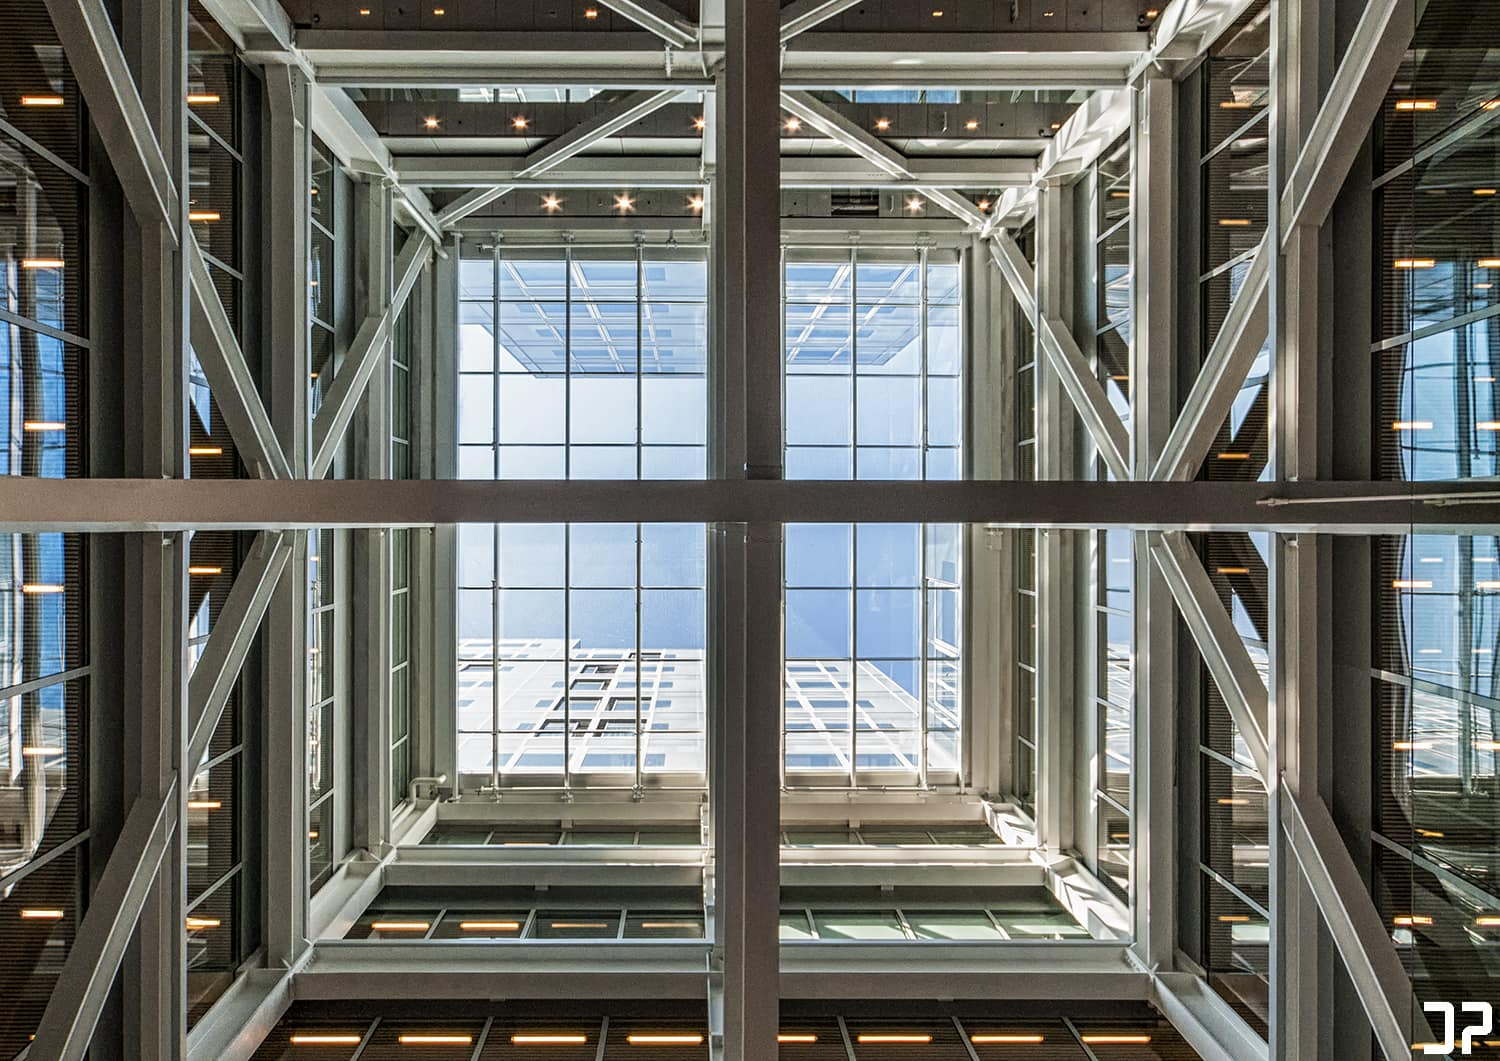 Timmerhuis Rotterdam - Looking up